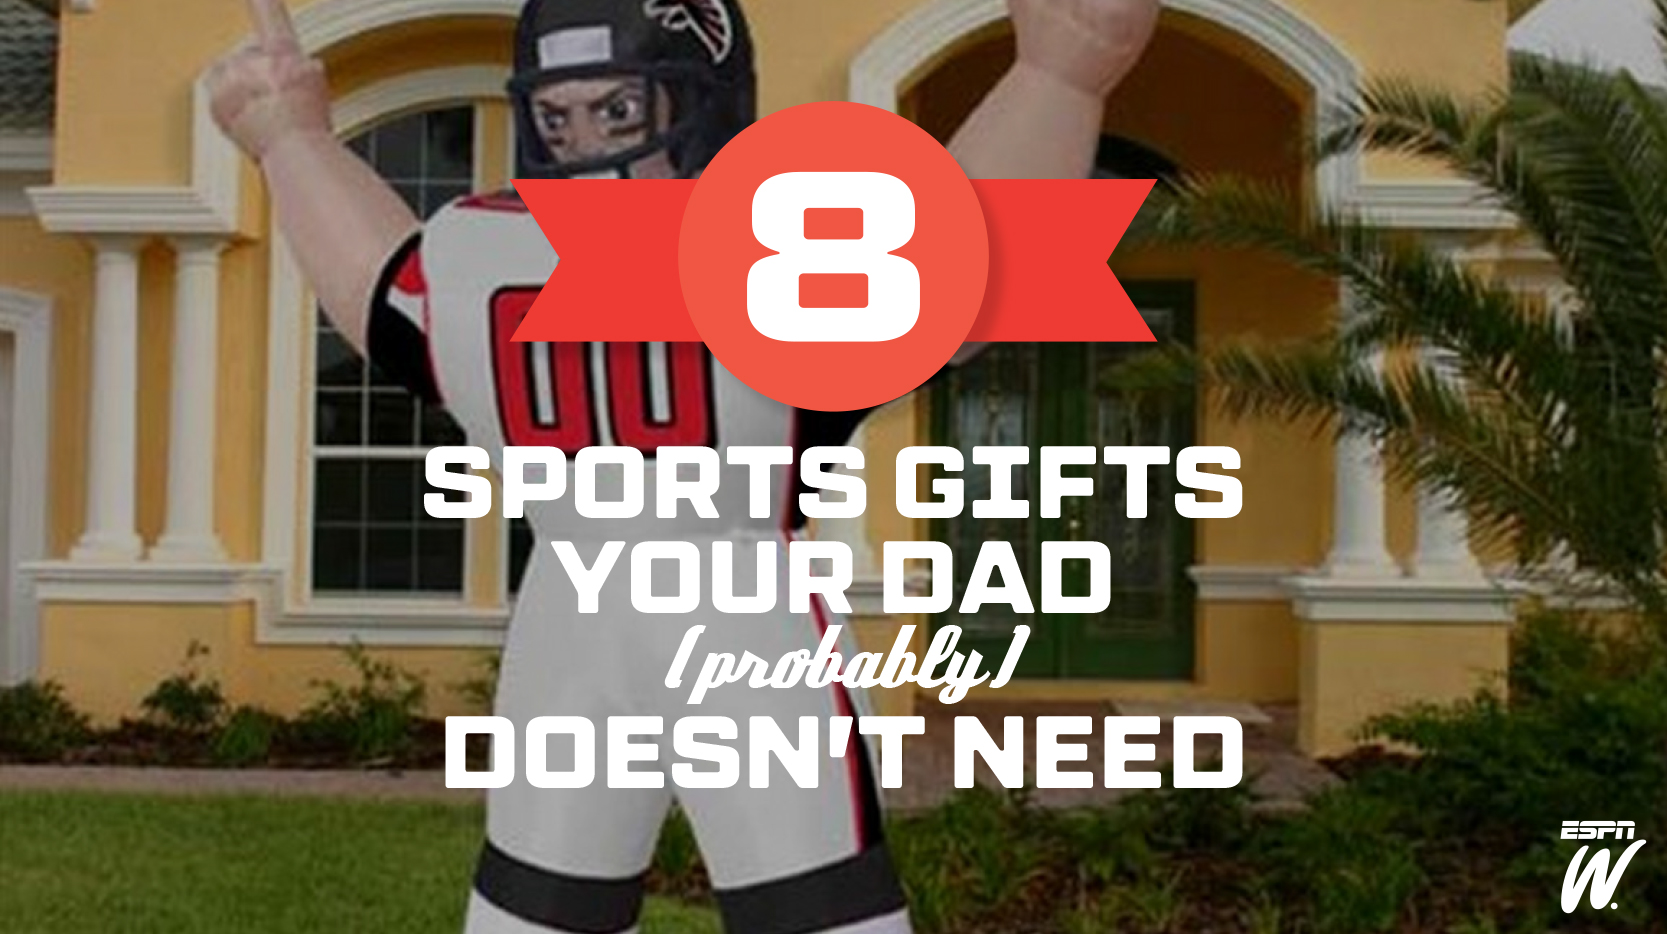 8 Sports Gifts Your Dad (Probably) Doesn't Need